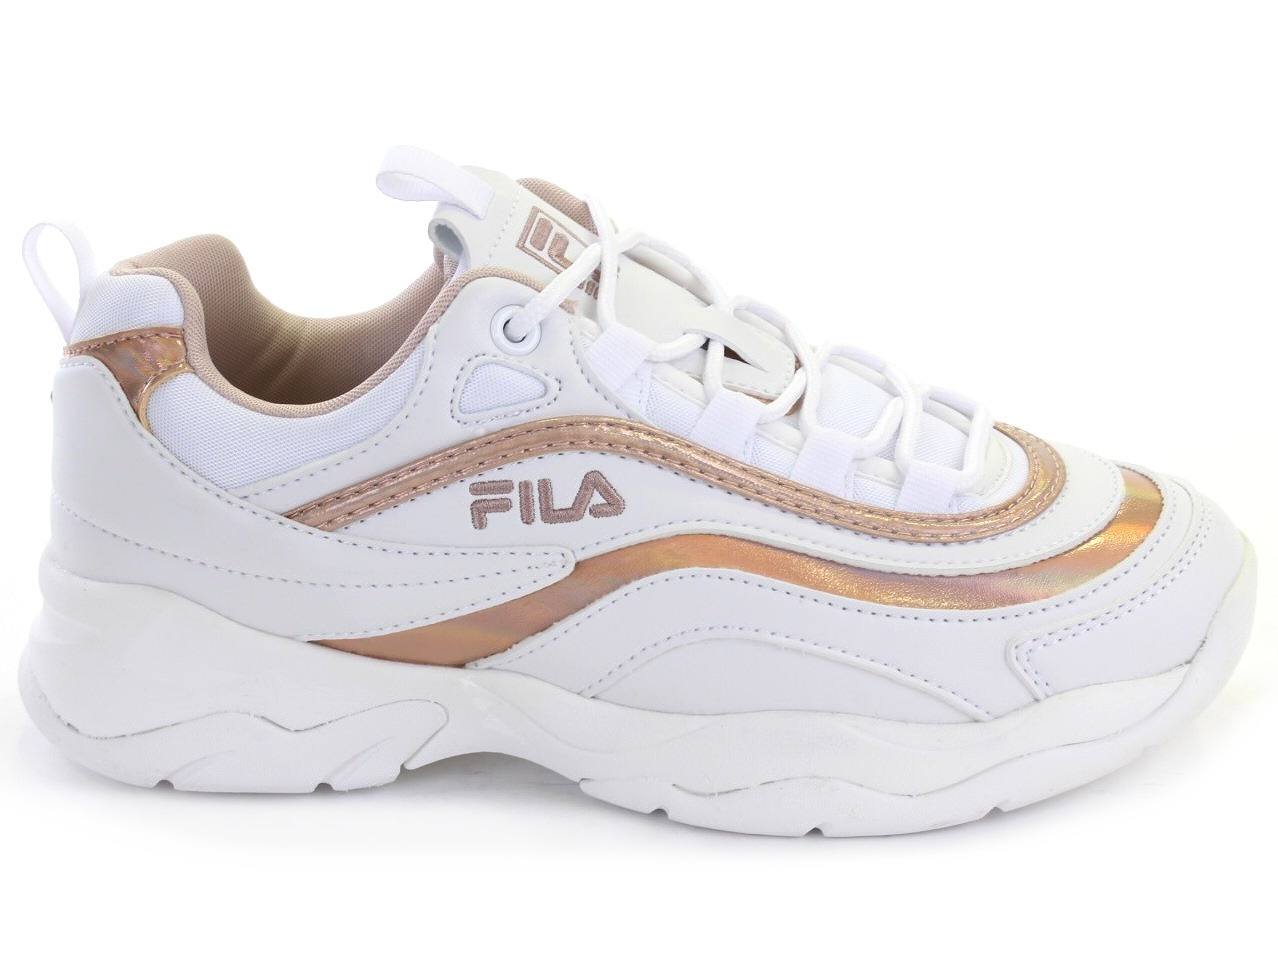 Sneakers and Espadrilles Fila 478 RAY M LOW Glispe Store